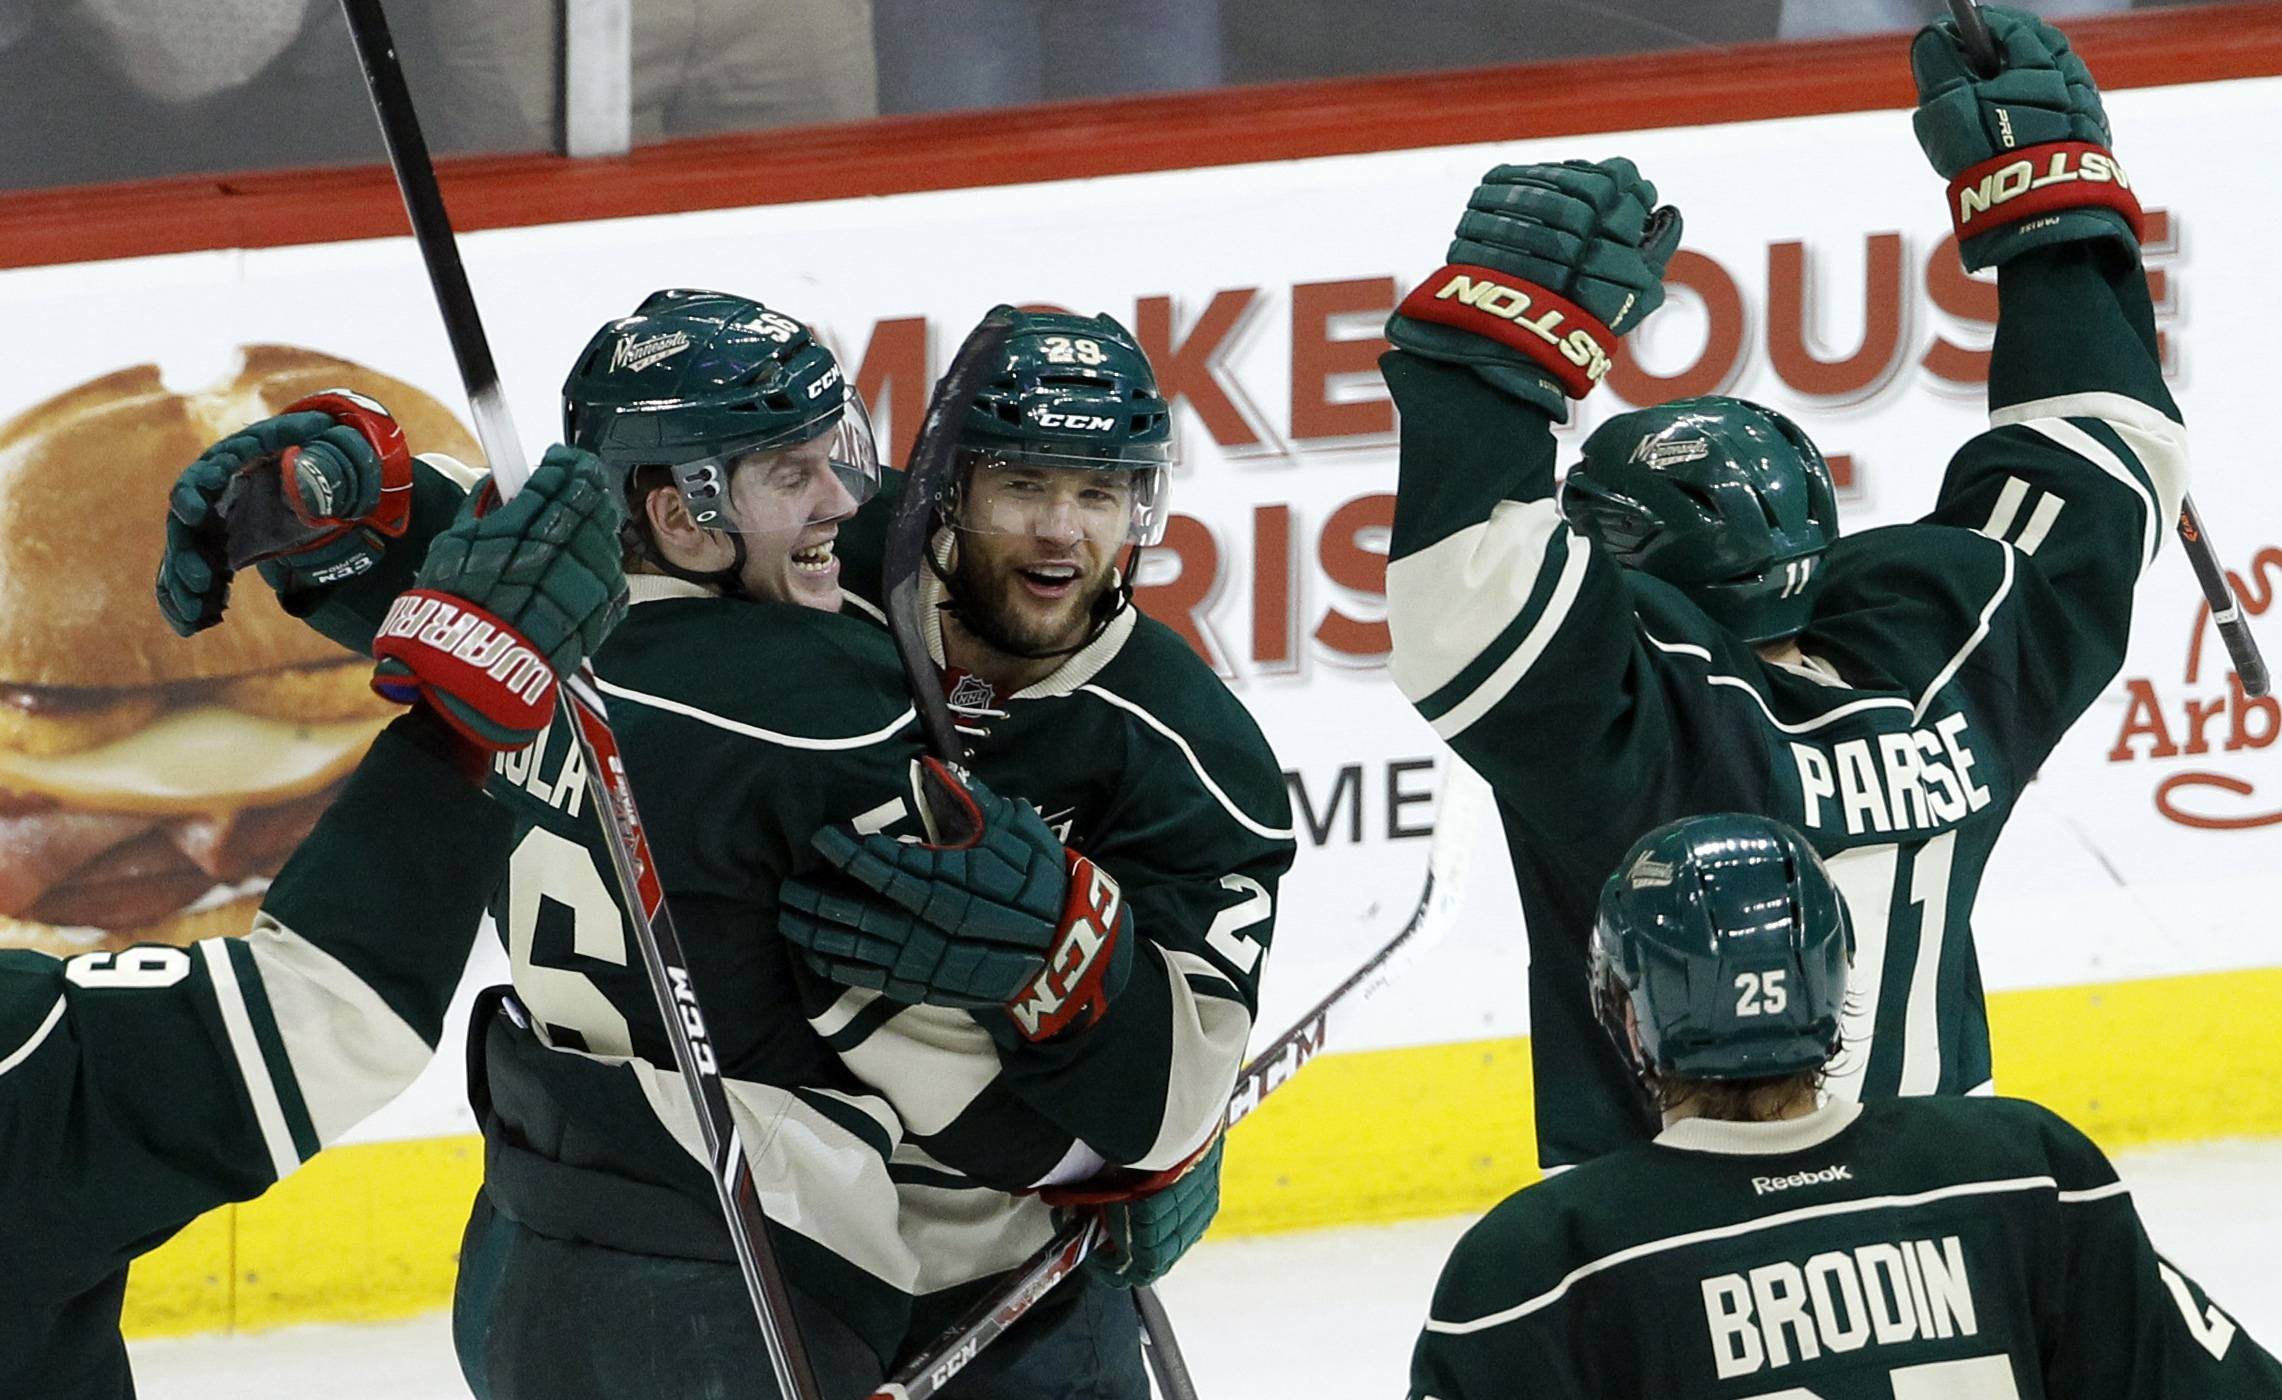 Minnesota Wild left wing Erik Haula, left, of Finland; right wing Jason Pominville, center; and left wing Zach Parise (11) celebrate Pominville's empty-net goal during the third period of Game 6 of the NHL hockey first-round playoff series against the Colorado Avalanche in St. Paul, Minn., Monday.